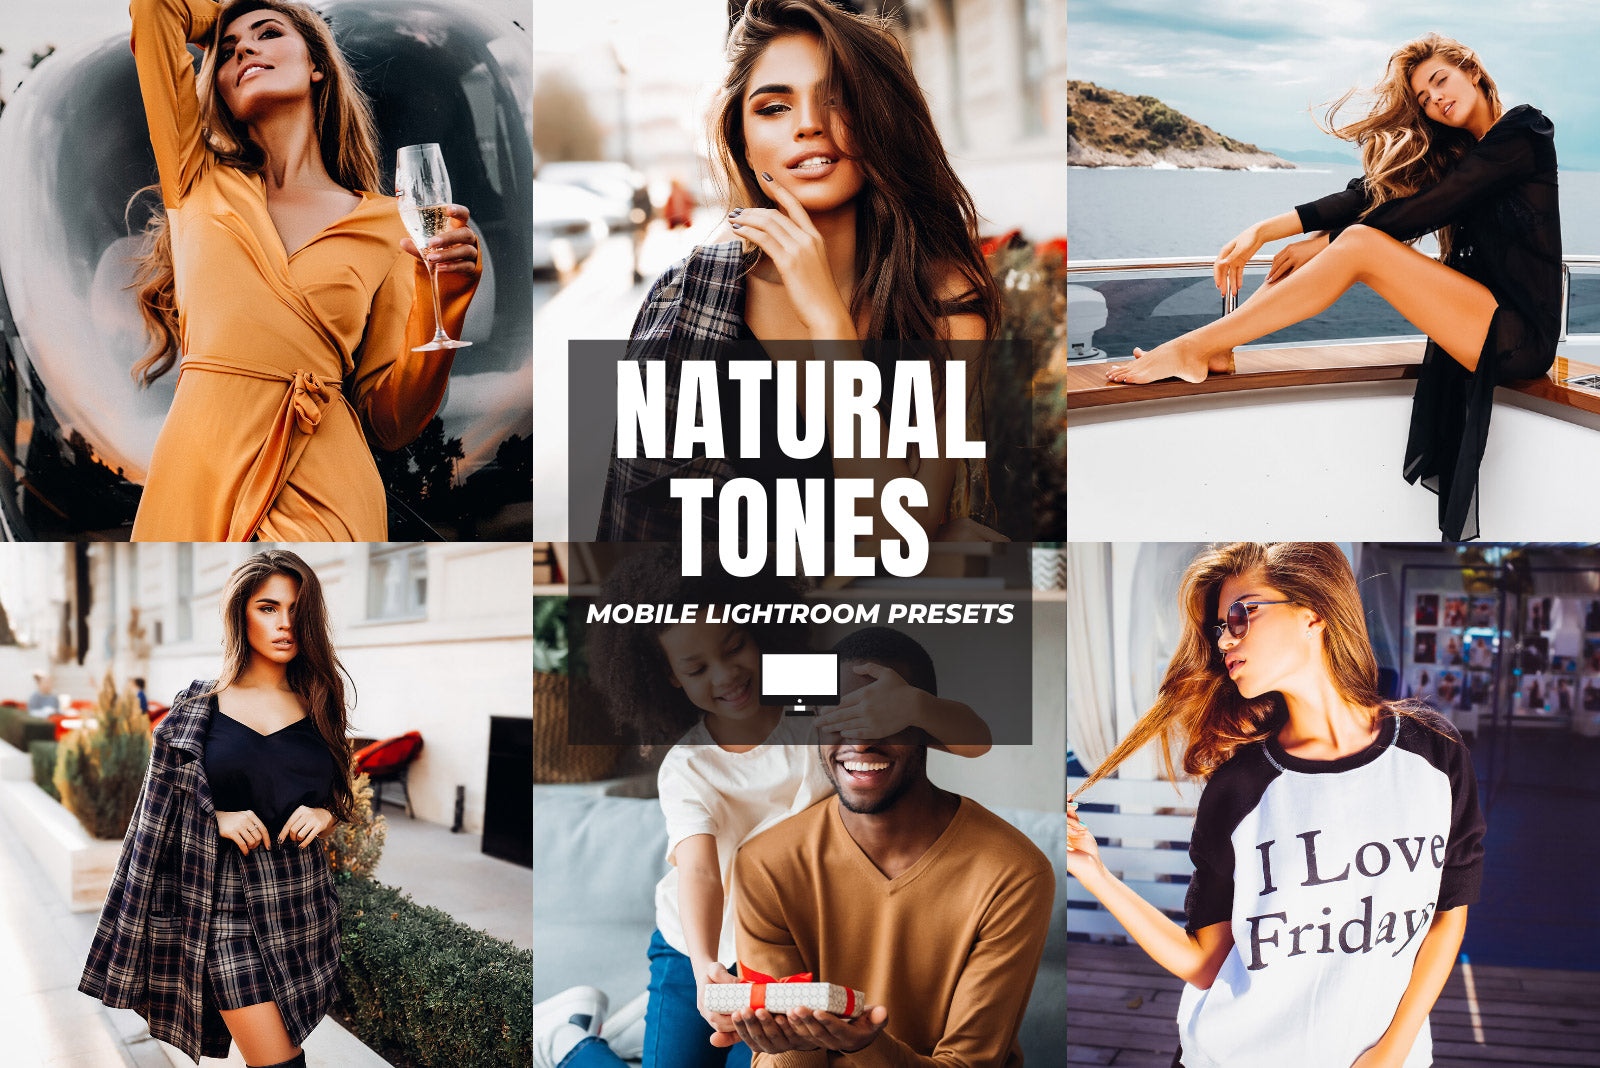 NATURAL TONES DESKTOP LIGHTROOM PRESETS by The Viral Presets